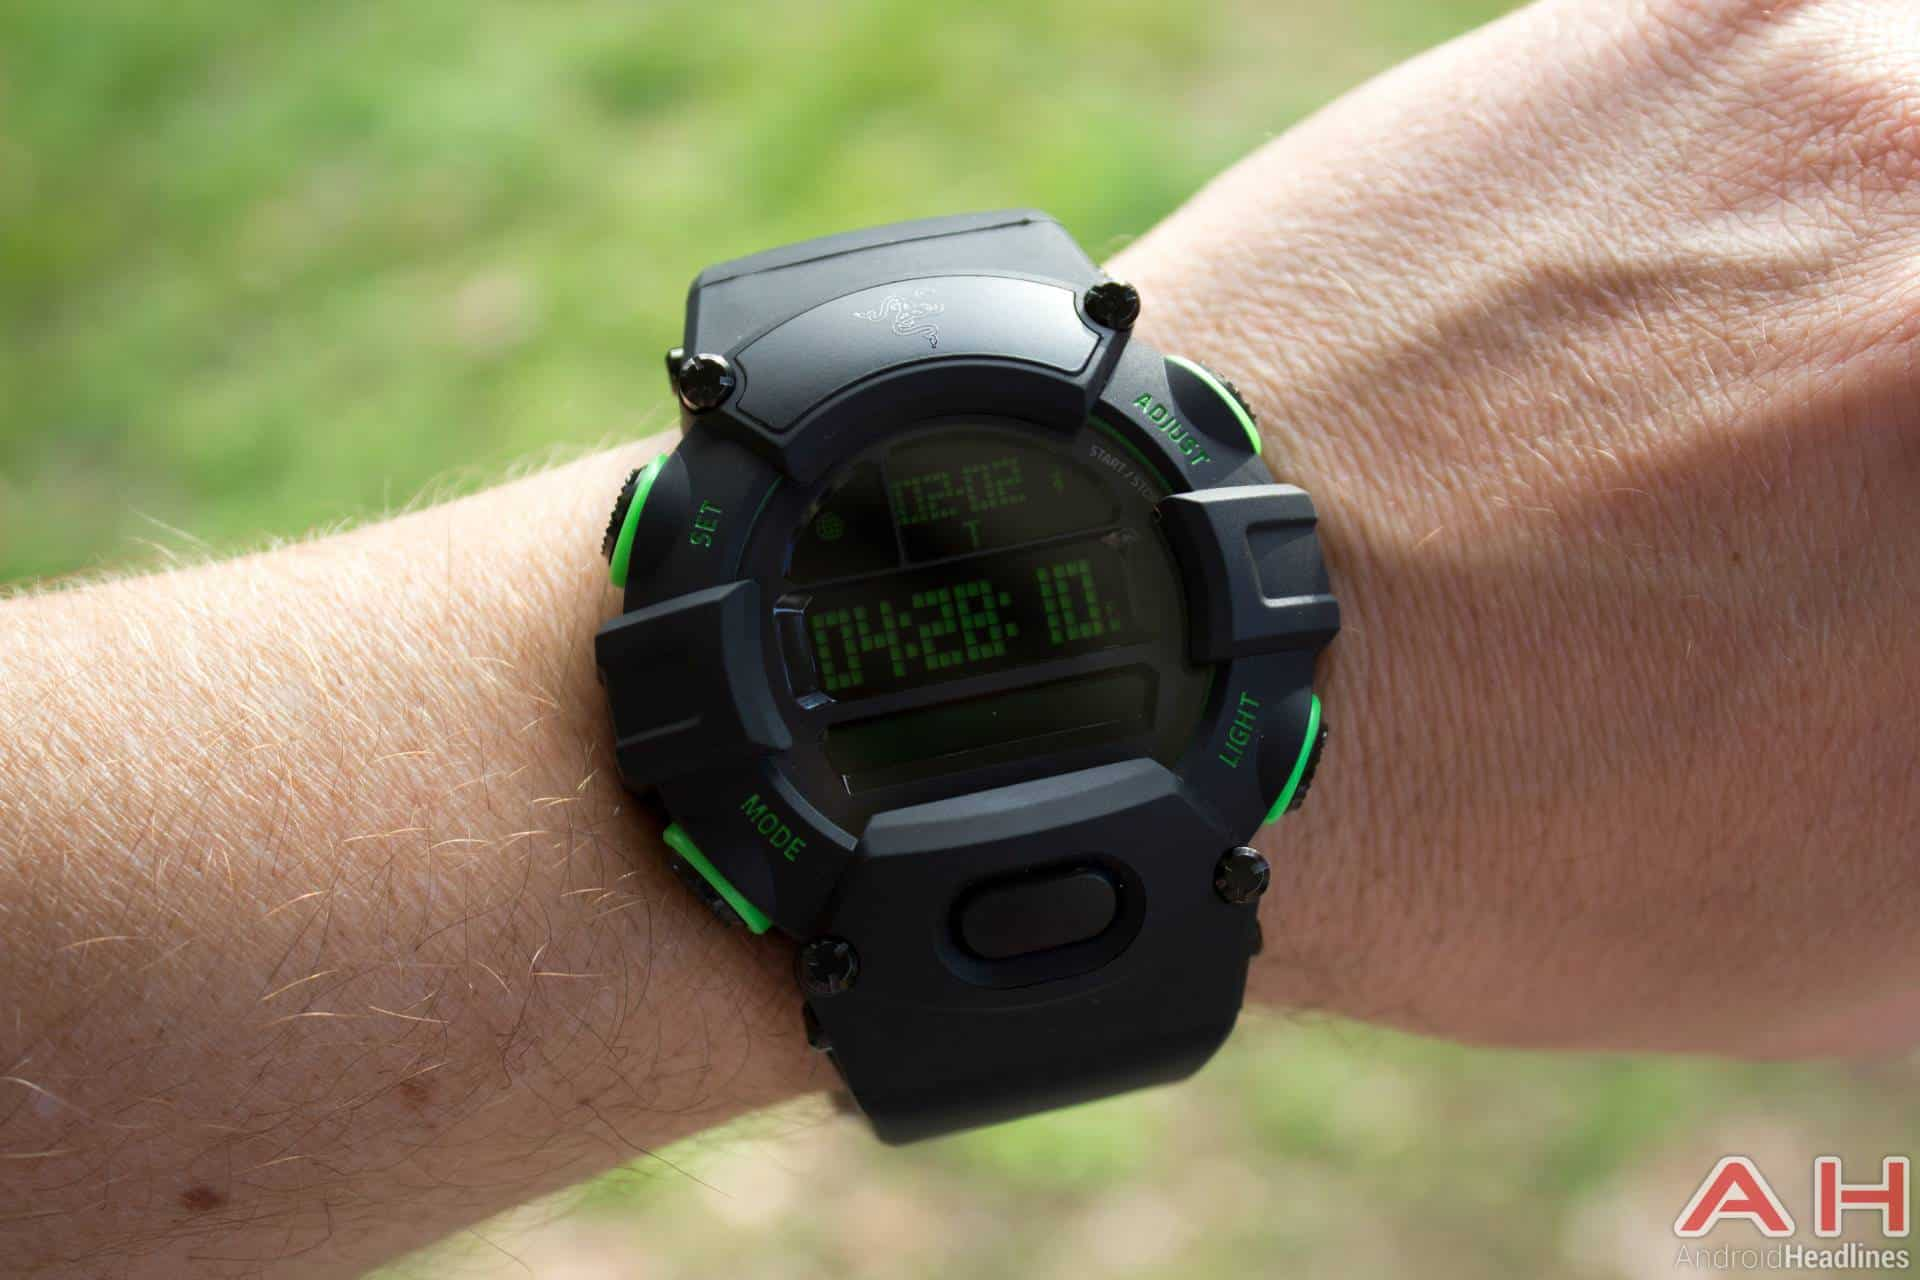 Razer-Nabu-Watch-AH-NS-01